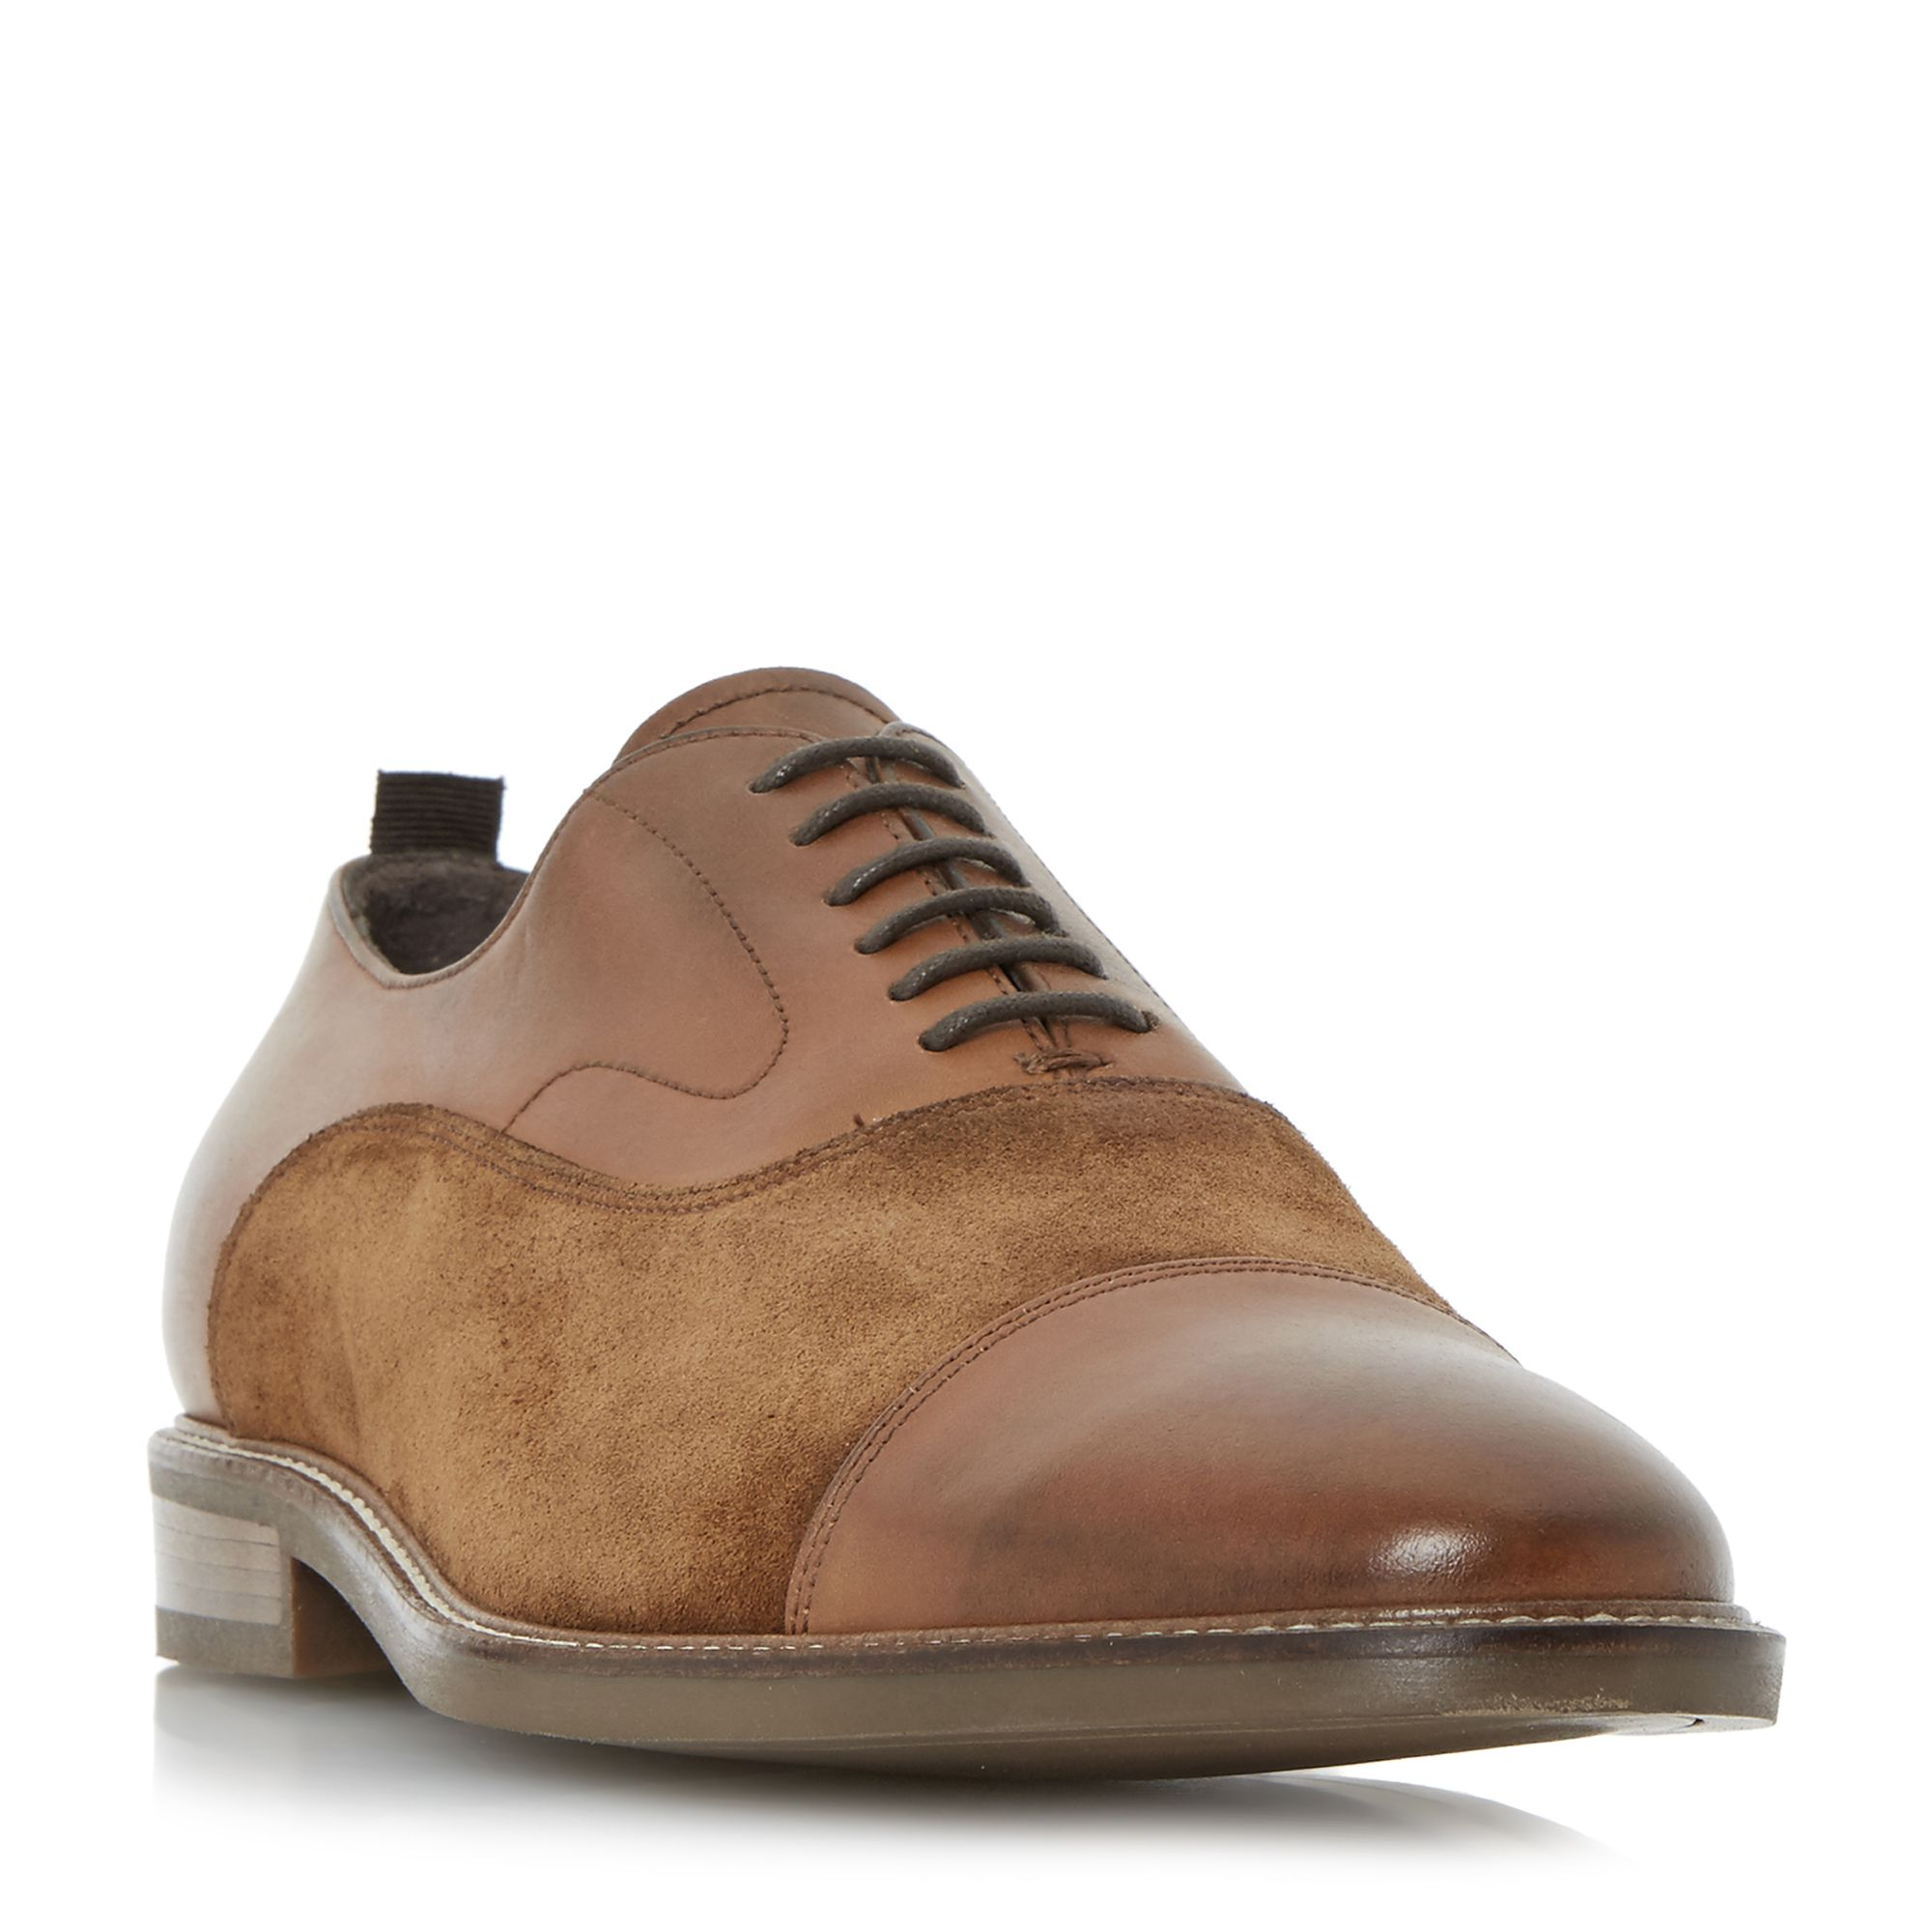 House Of Fraser Womens Shoes Bertie